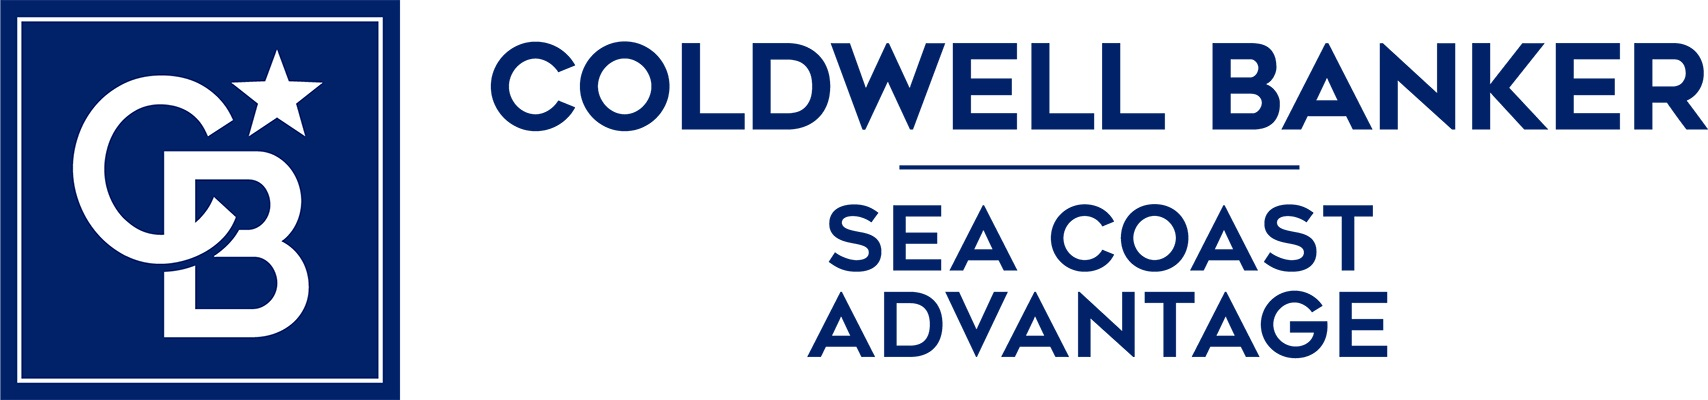 Karina Olson - Coldwell Banker Sea Coast Advantage Realty